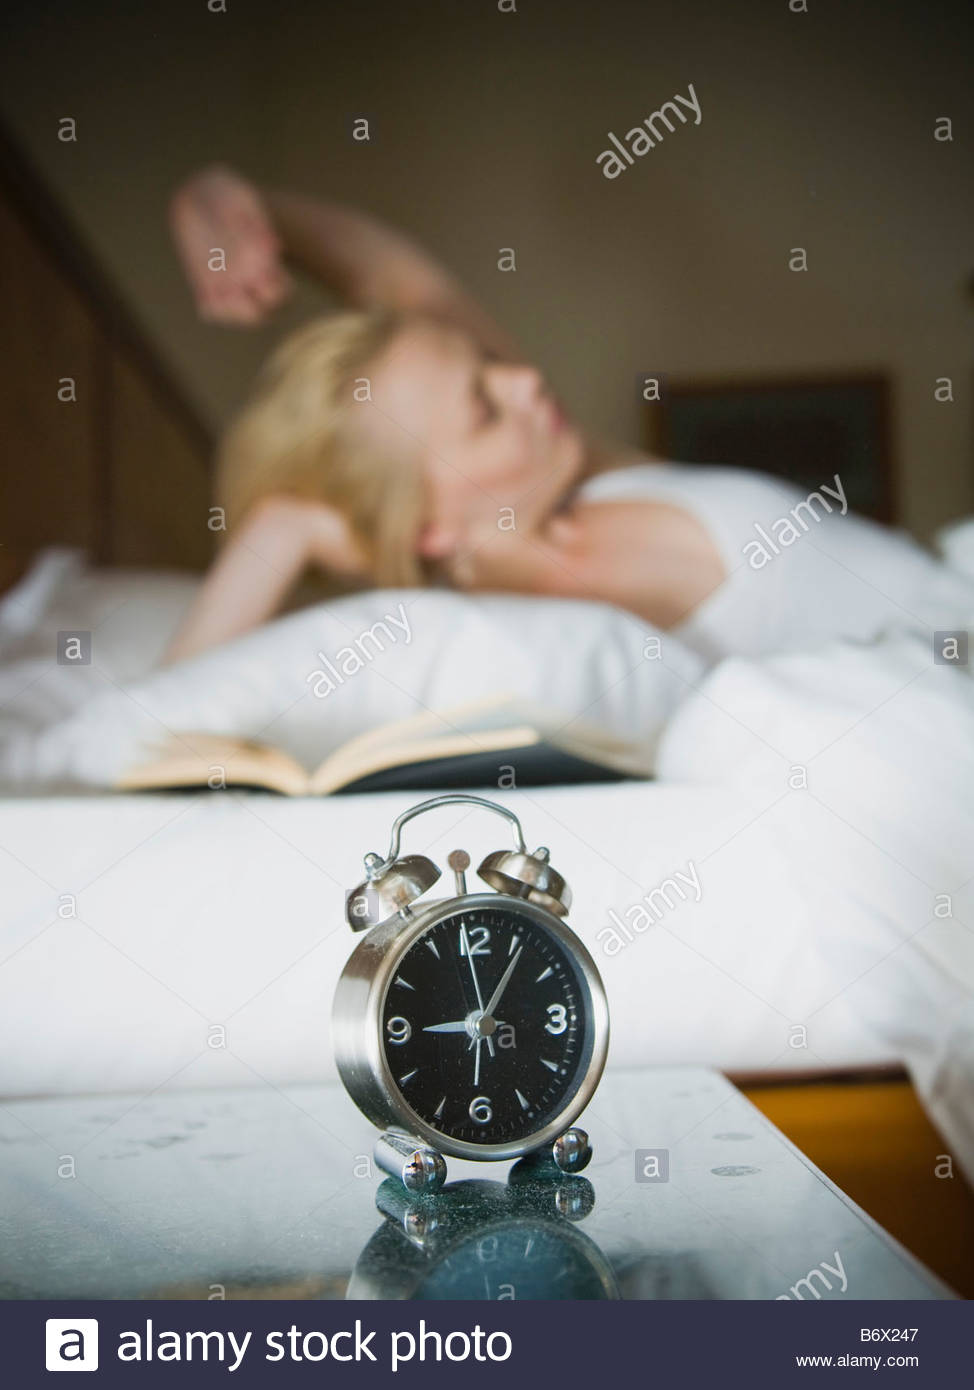 Woman in her bed with clock and book - Stock Image